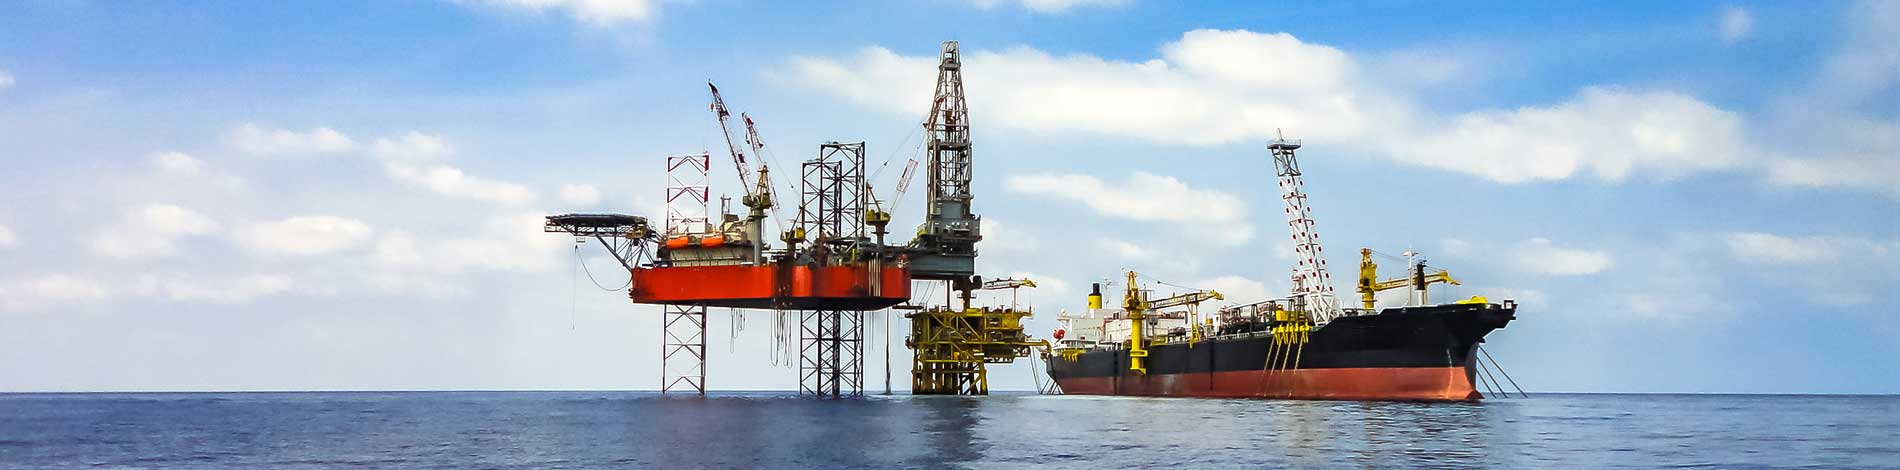 Liability regimes in offshore contracts - Skuld